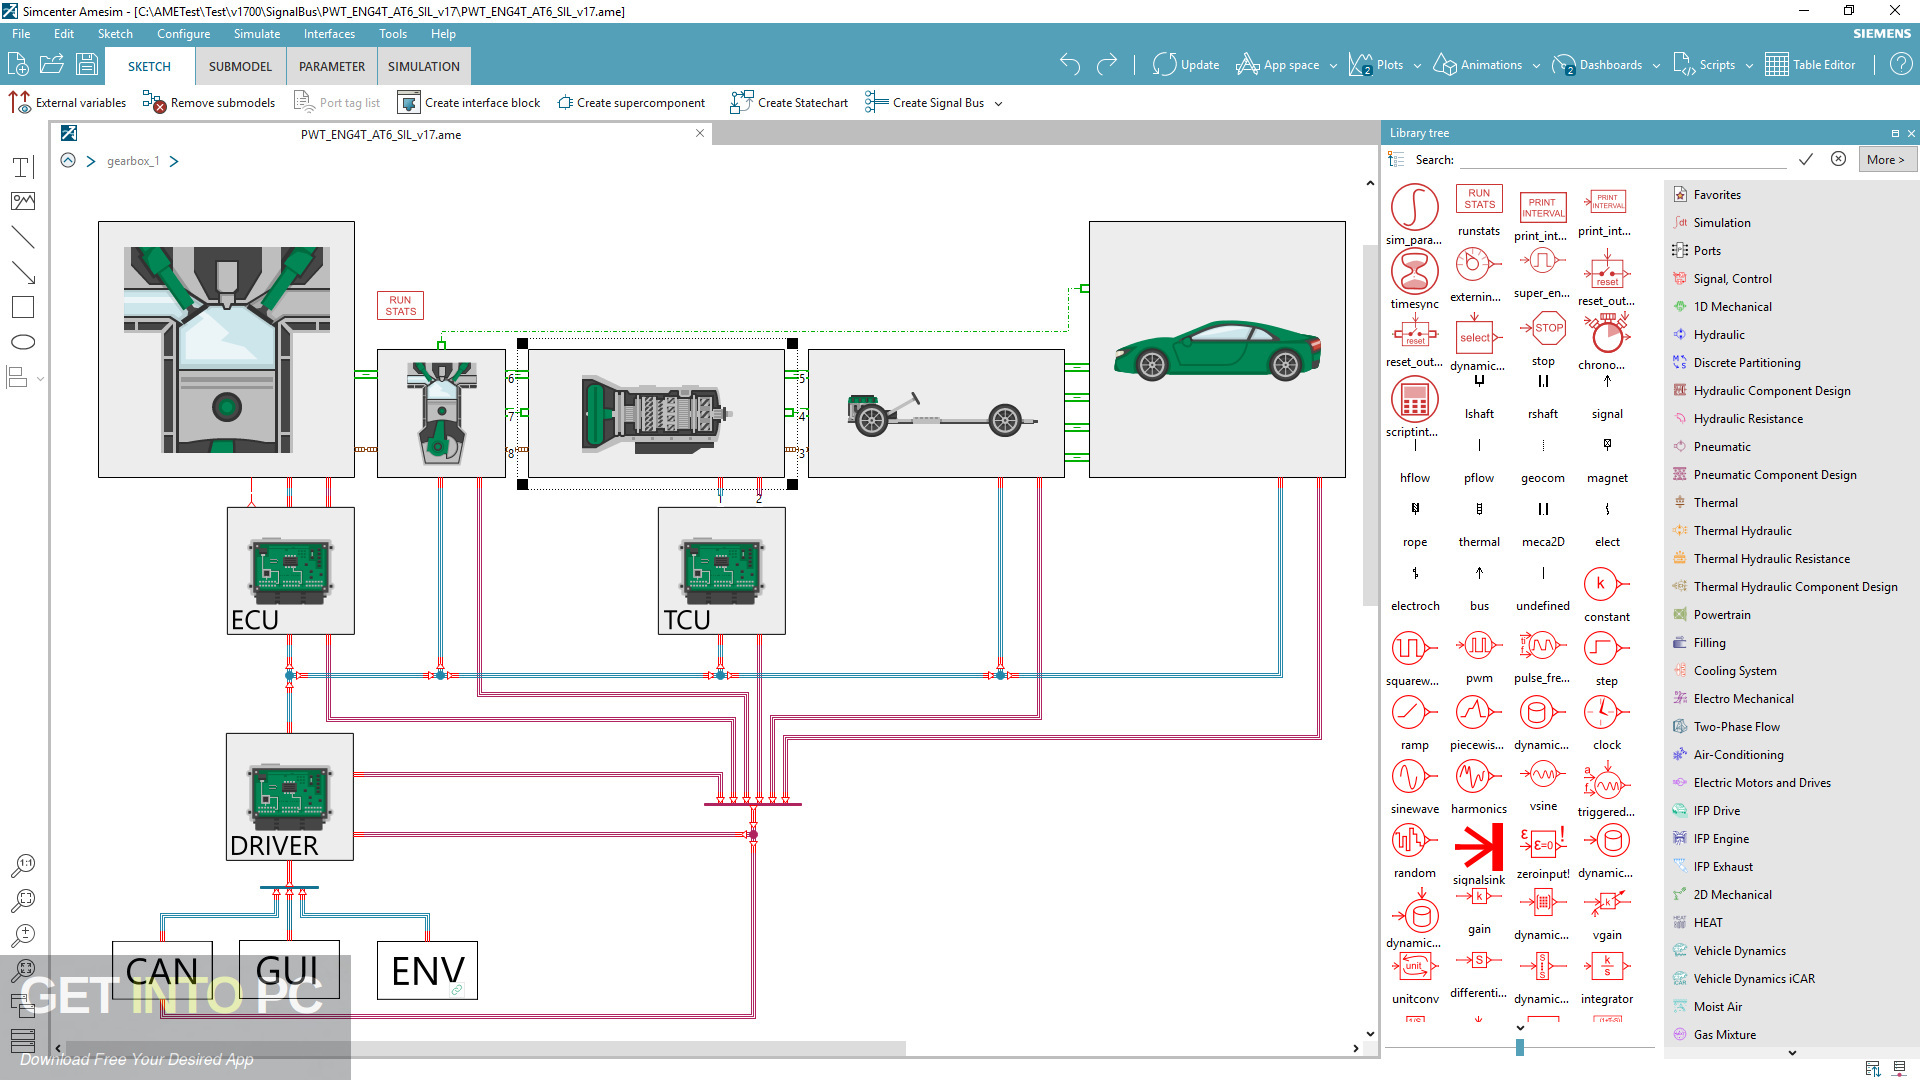 Siemens Simcenter Amesim 2018 Latest Version Download-GetintoPC.com